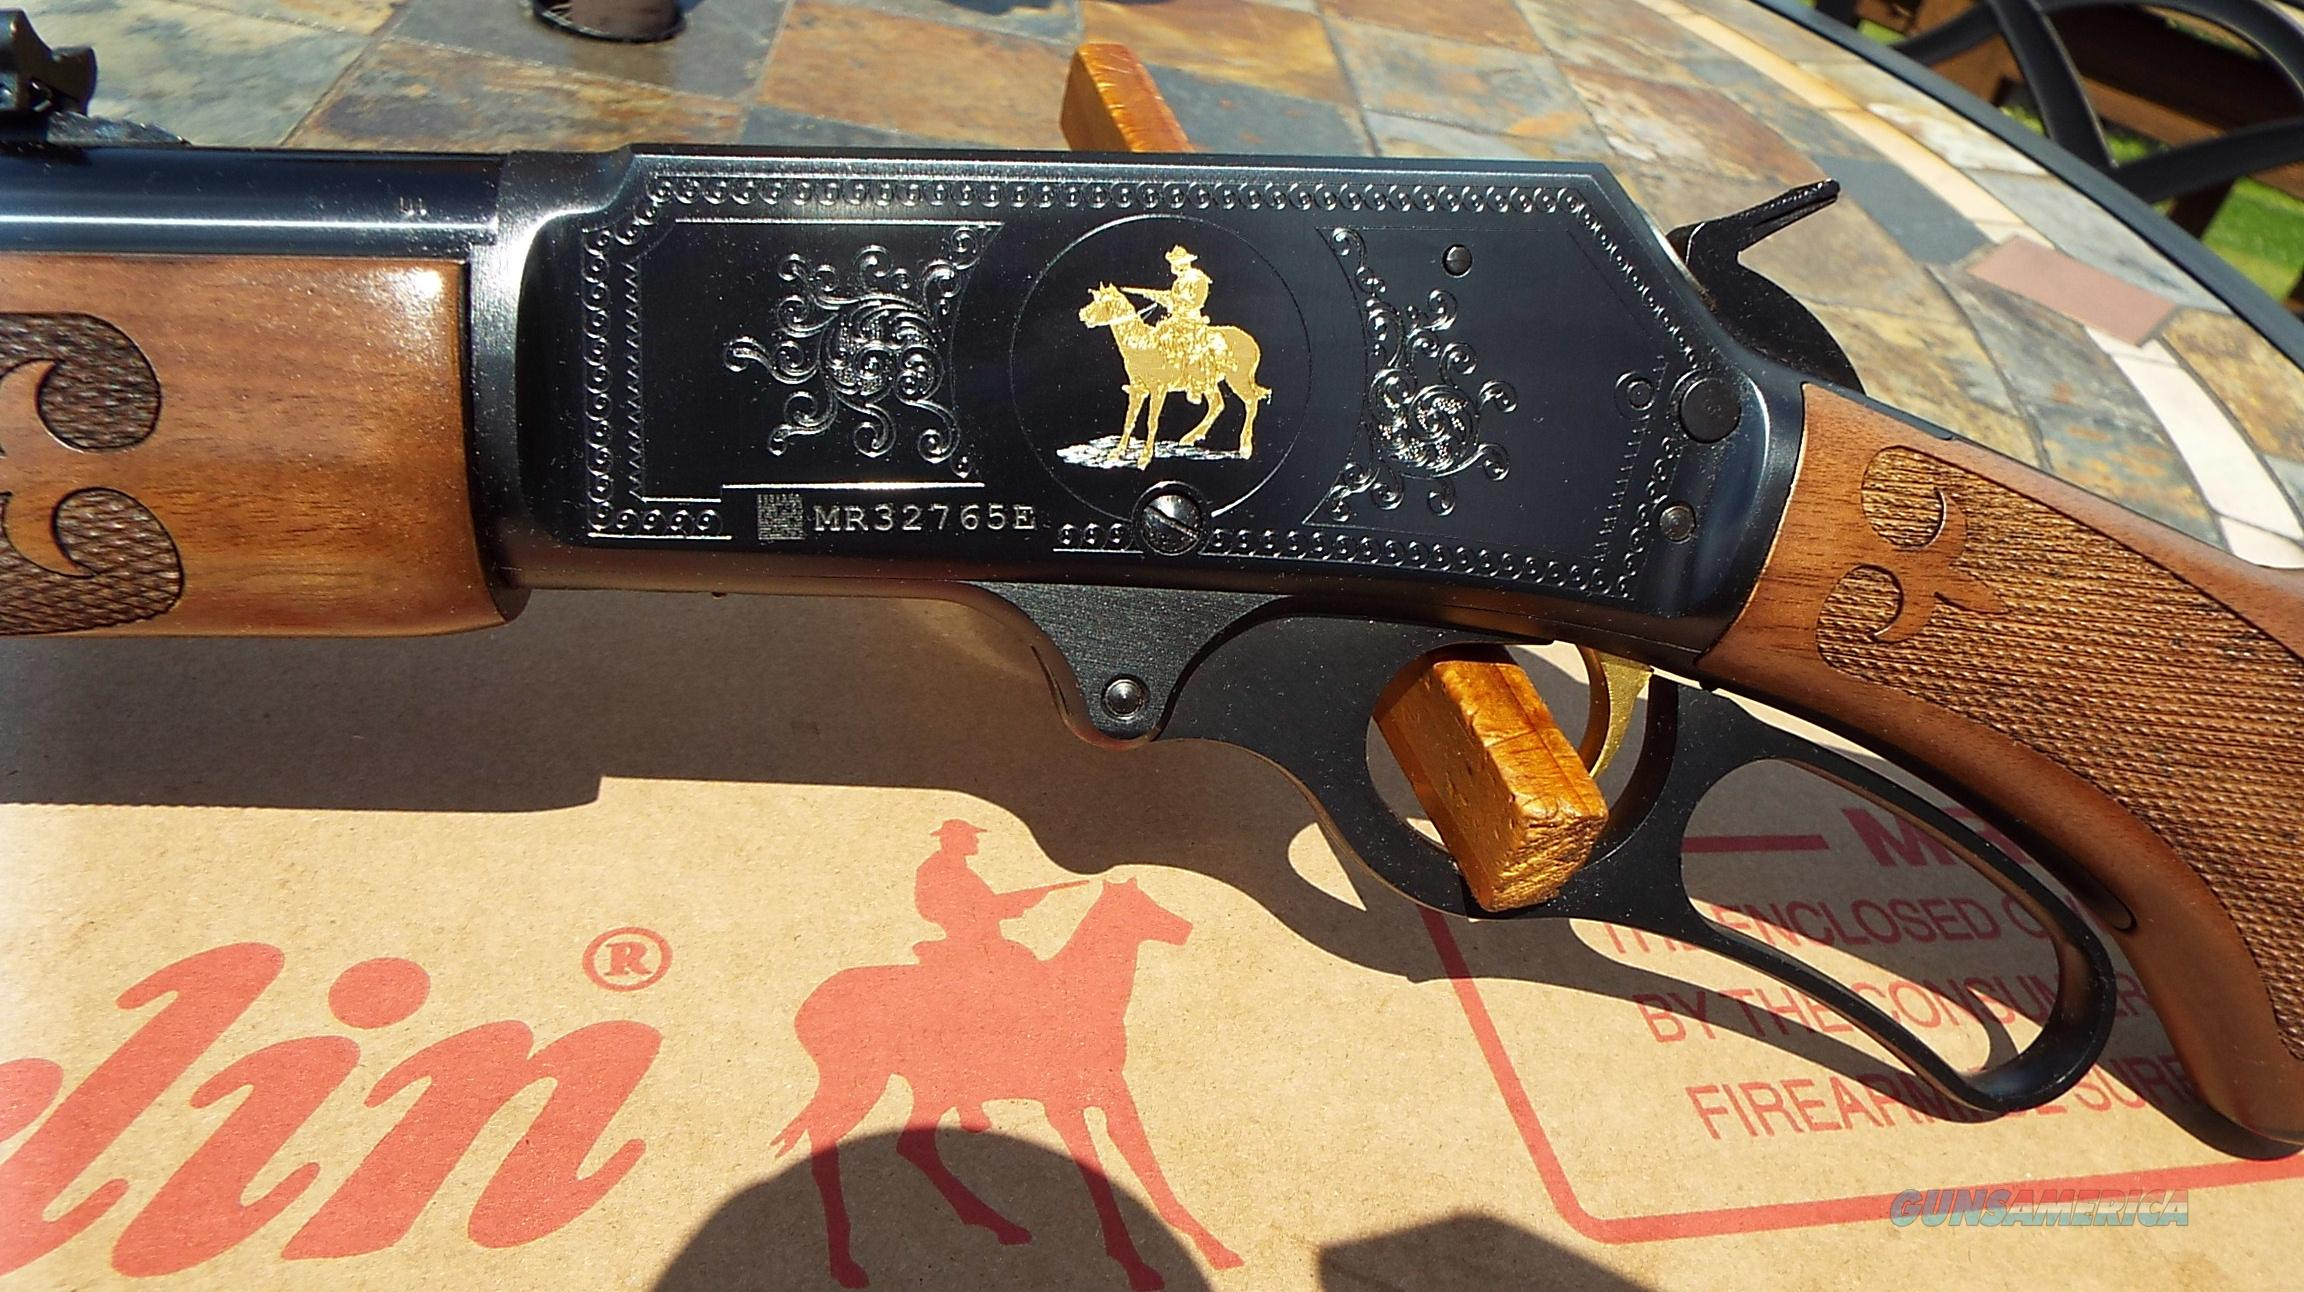 Ltd Edition Marlin 336 LTD w/ Gold Inlay Engraved      30-30 Win.     New!      LAYAWAY OPTION        70501    336C  Guns > Rifles > Marlin Rifles > Modern > Lever Action